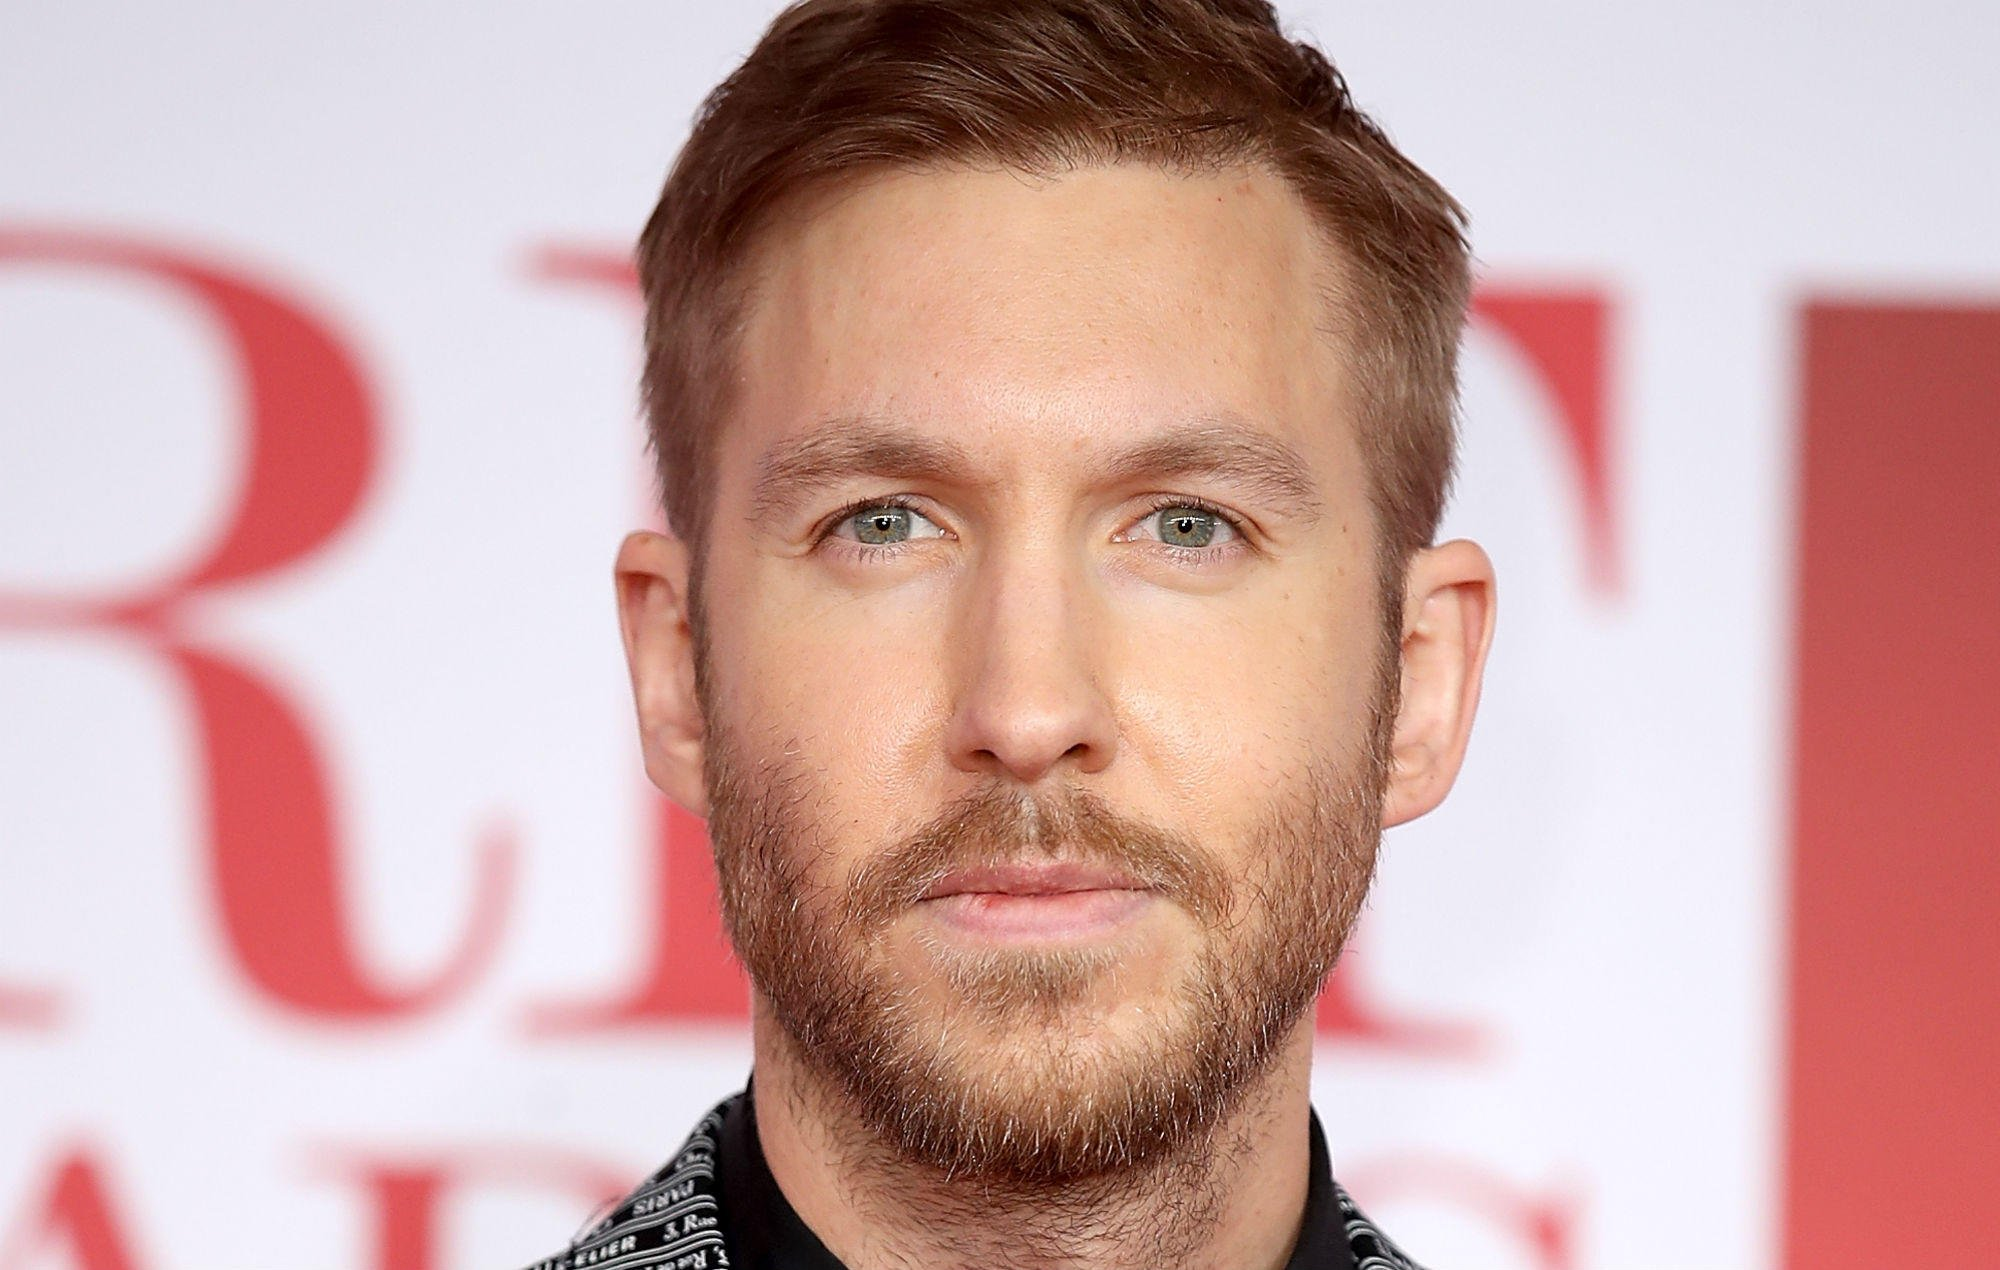 """Calvin Harris says EDM """"doesn't have anything in common with the music I love to make"""" https://t.co/4BlxxZkd5a https://t.co/UwJoDsNFbi"""